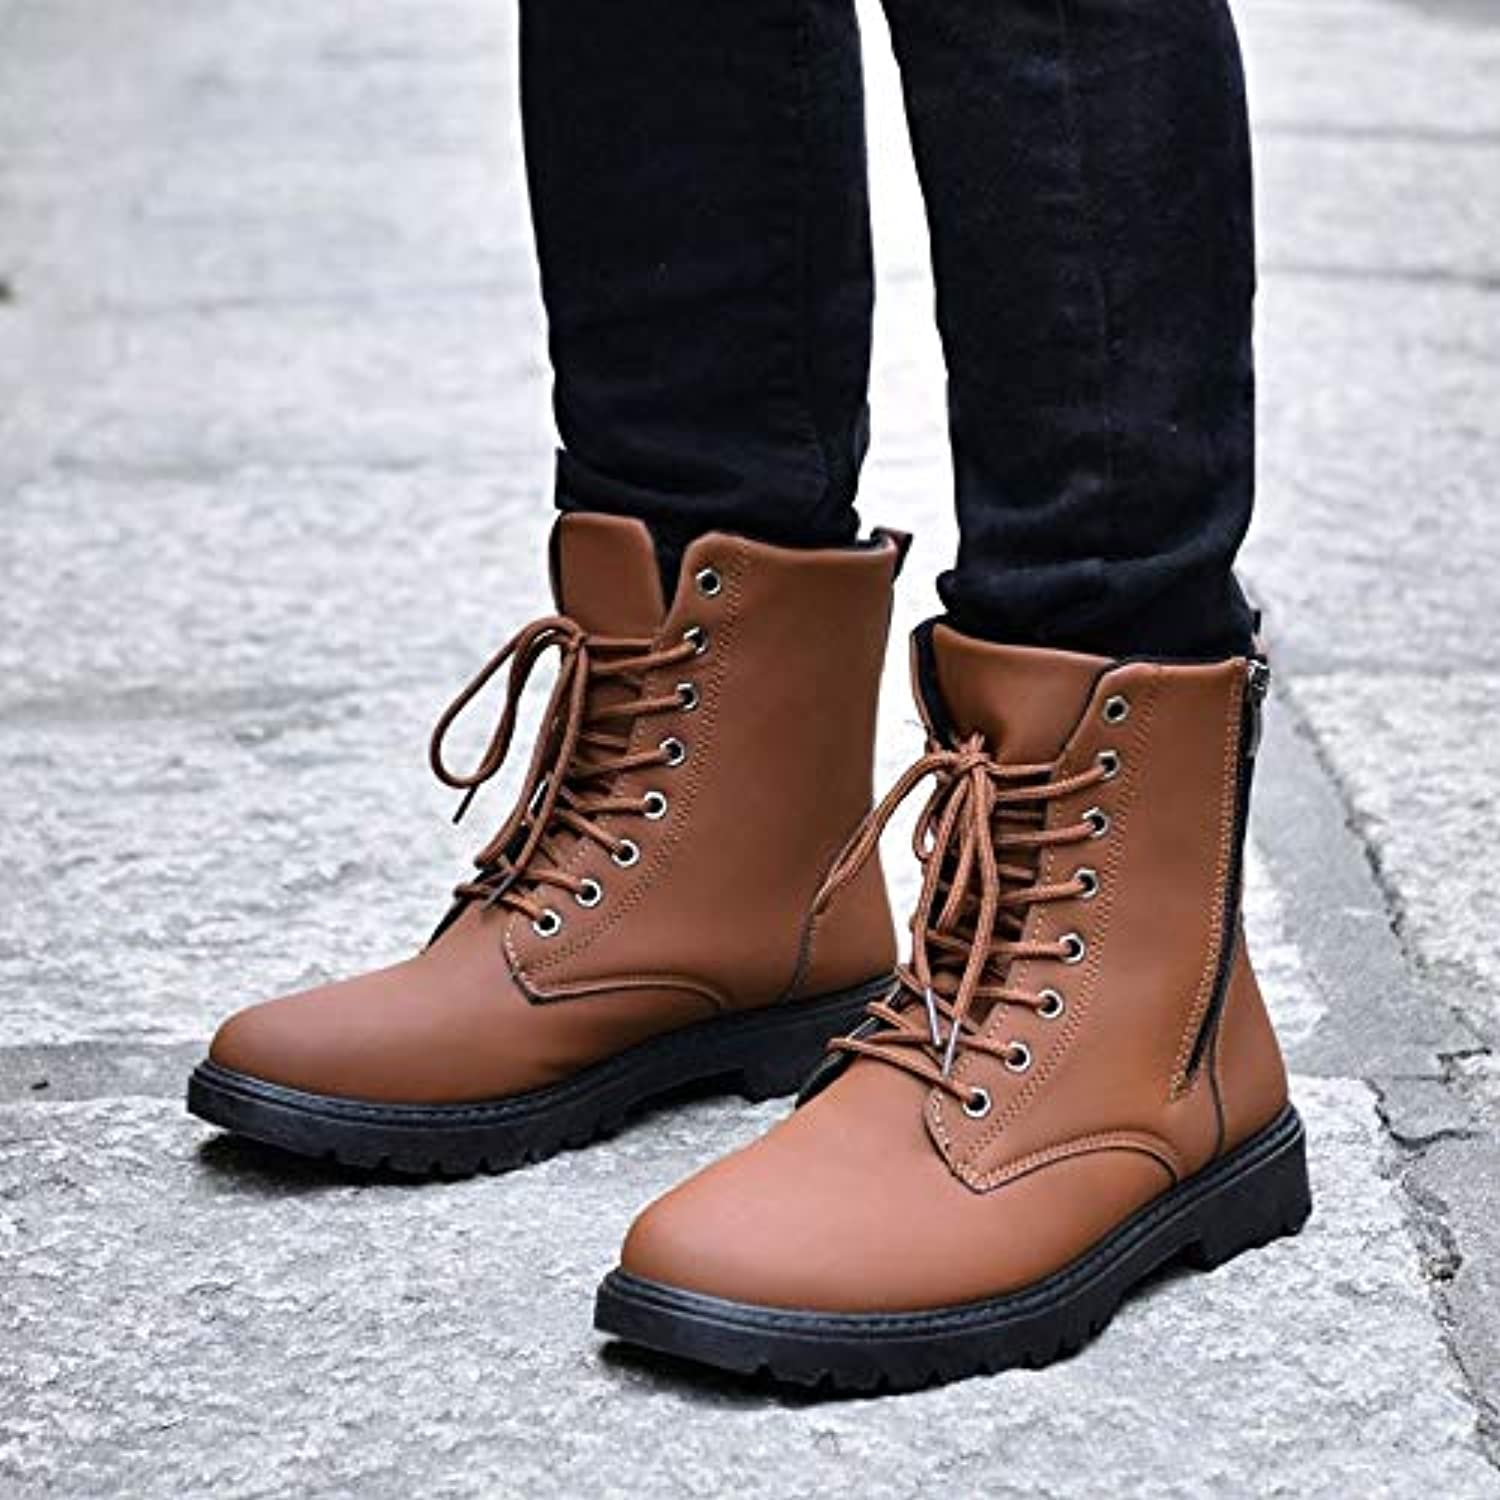 VXCZFS Outdoor boots Joker In The Middle Of A Single Boots In The Desert High To Help Winter Outdoor Boots Cotton shoes Waterproof Men'S Boots British Retro In The Tube Boots, 42, Yellow Cotton Boots